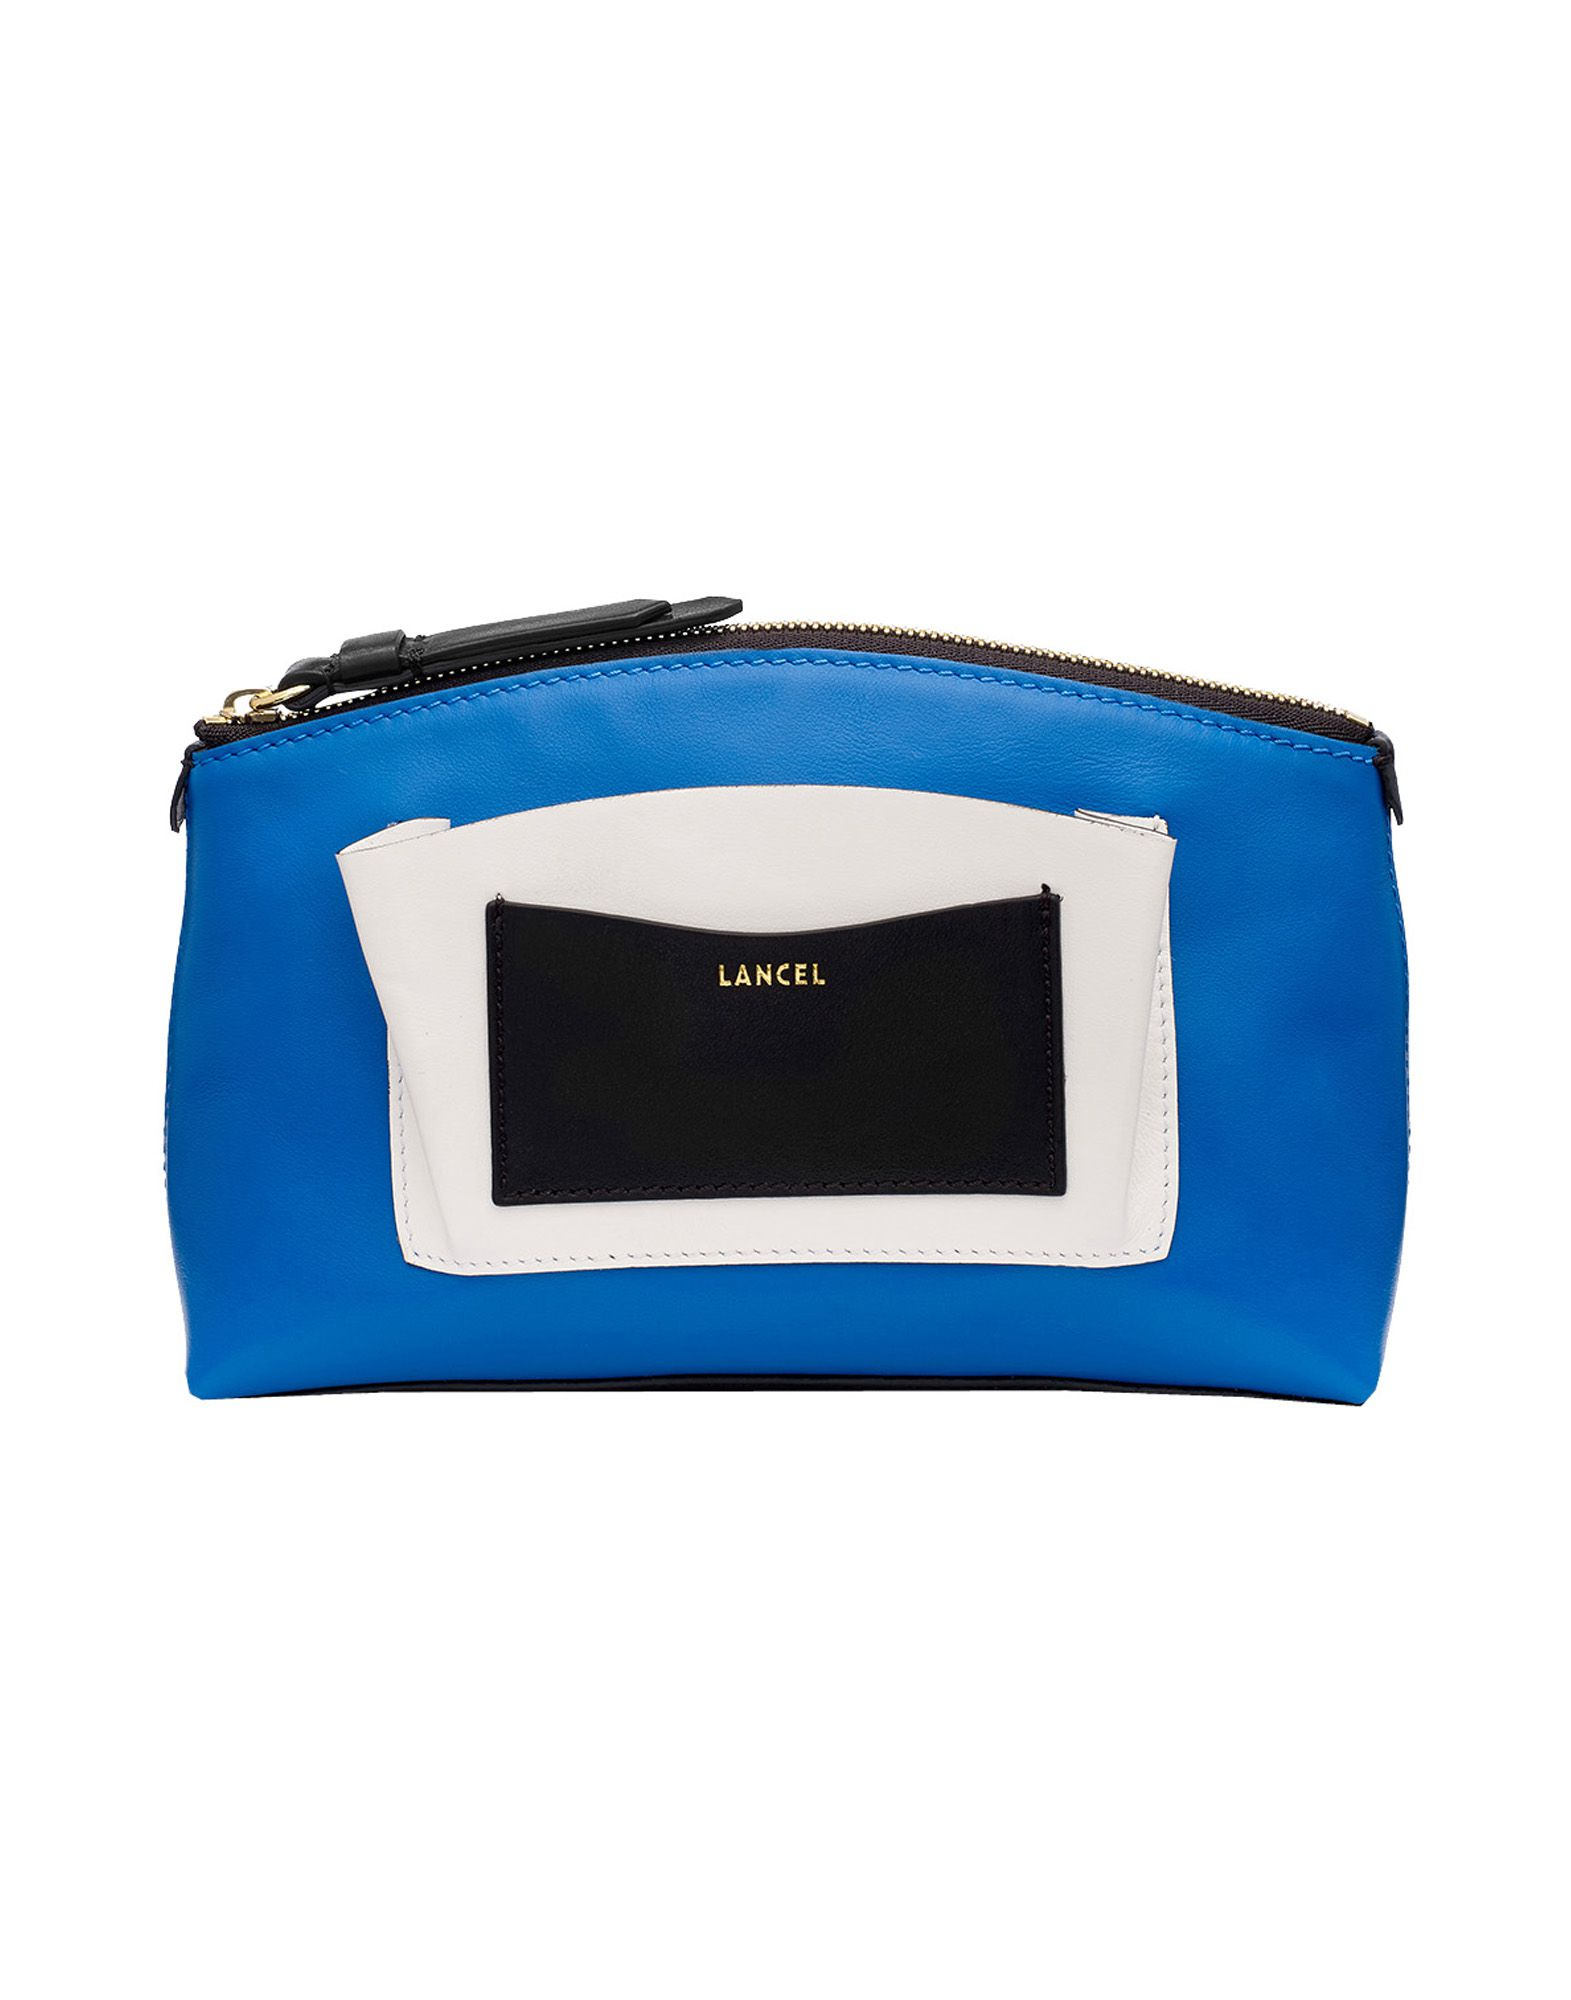 LANCEL Beauty case